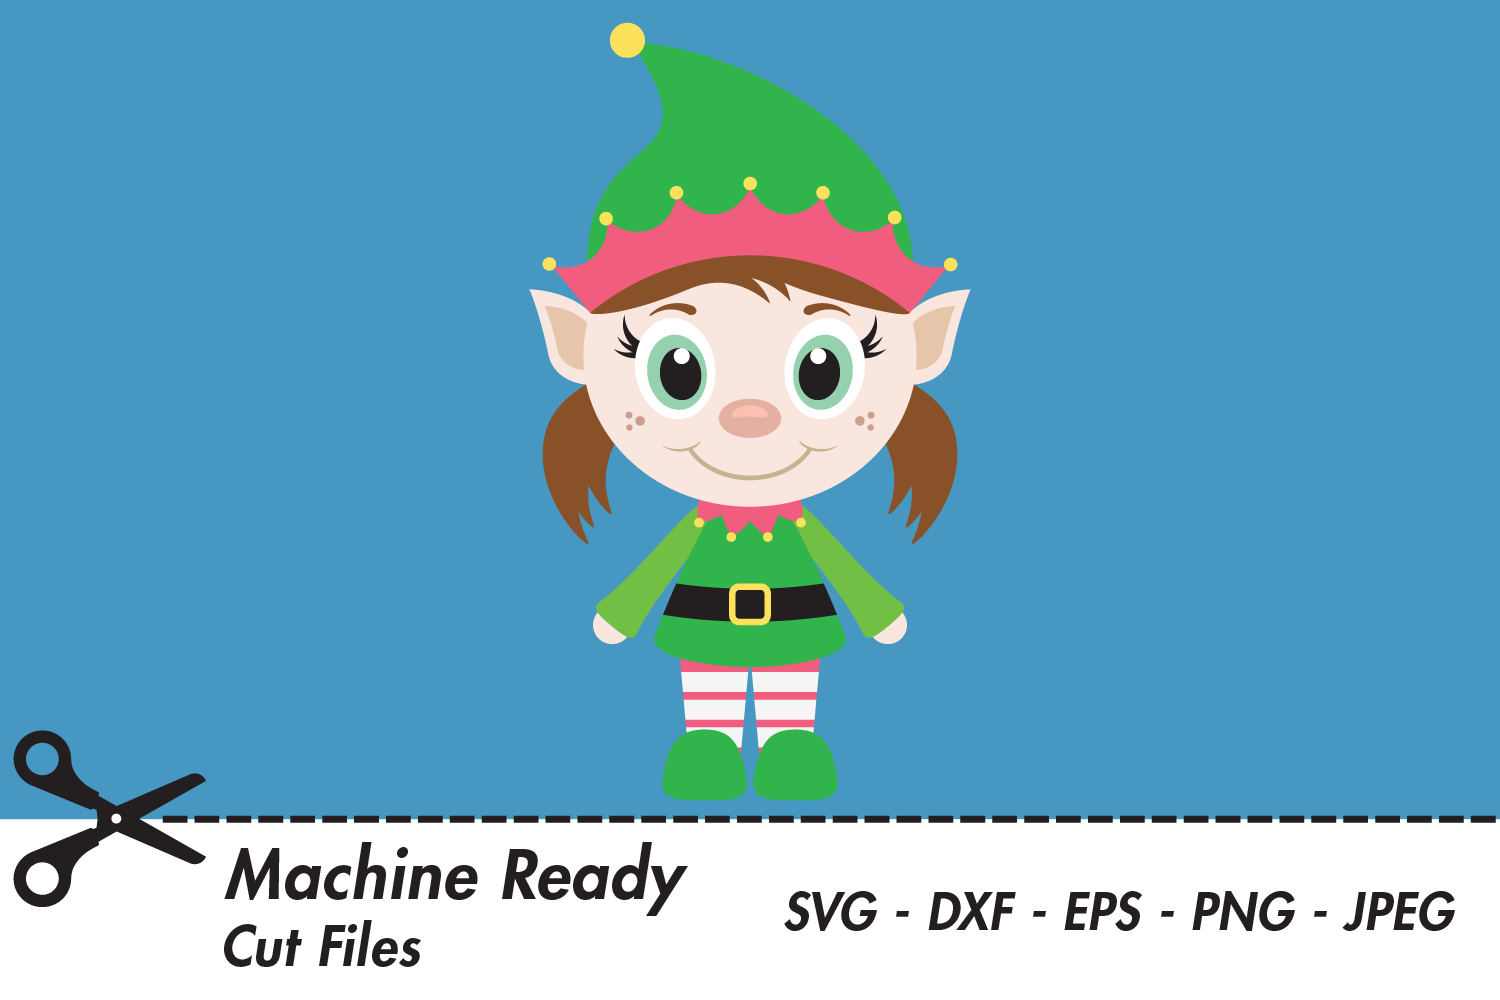 Download Free Cute Girl Elf Graphic By Captaincreative Creative Fabrica for Cricut Explore, Silhouette and other cutting machines.